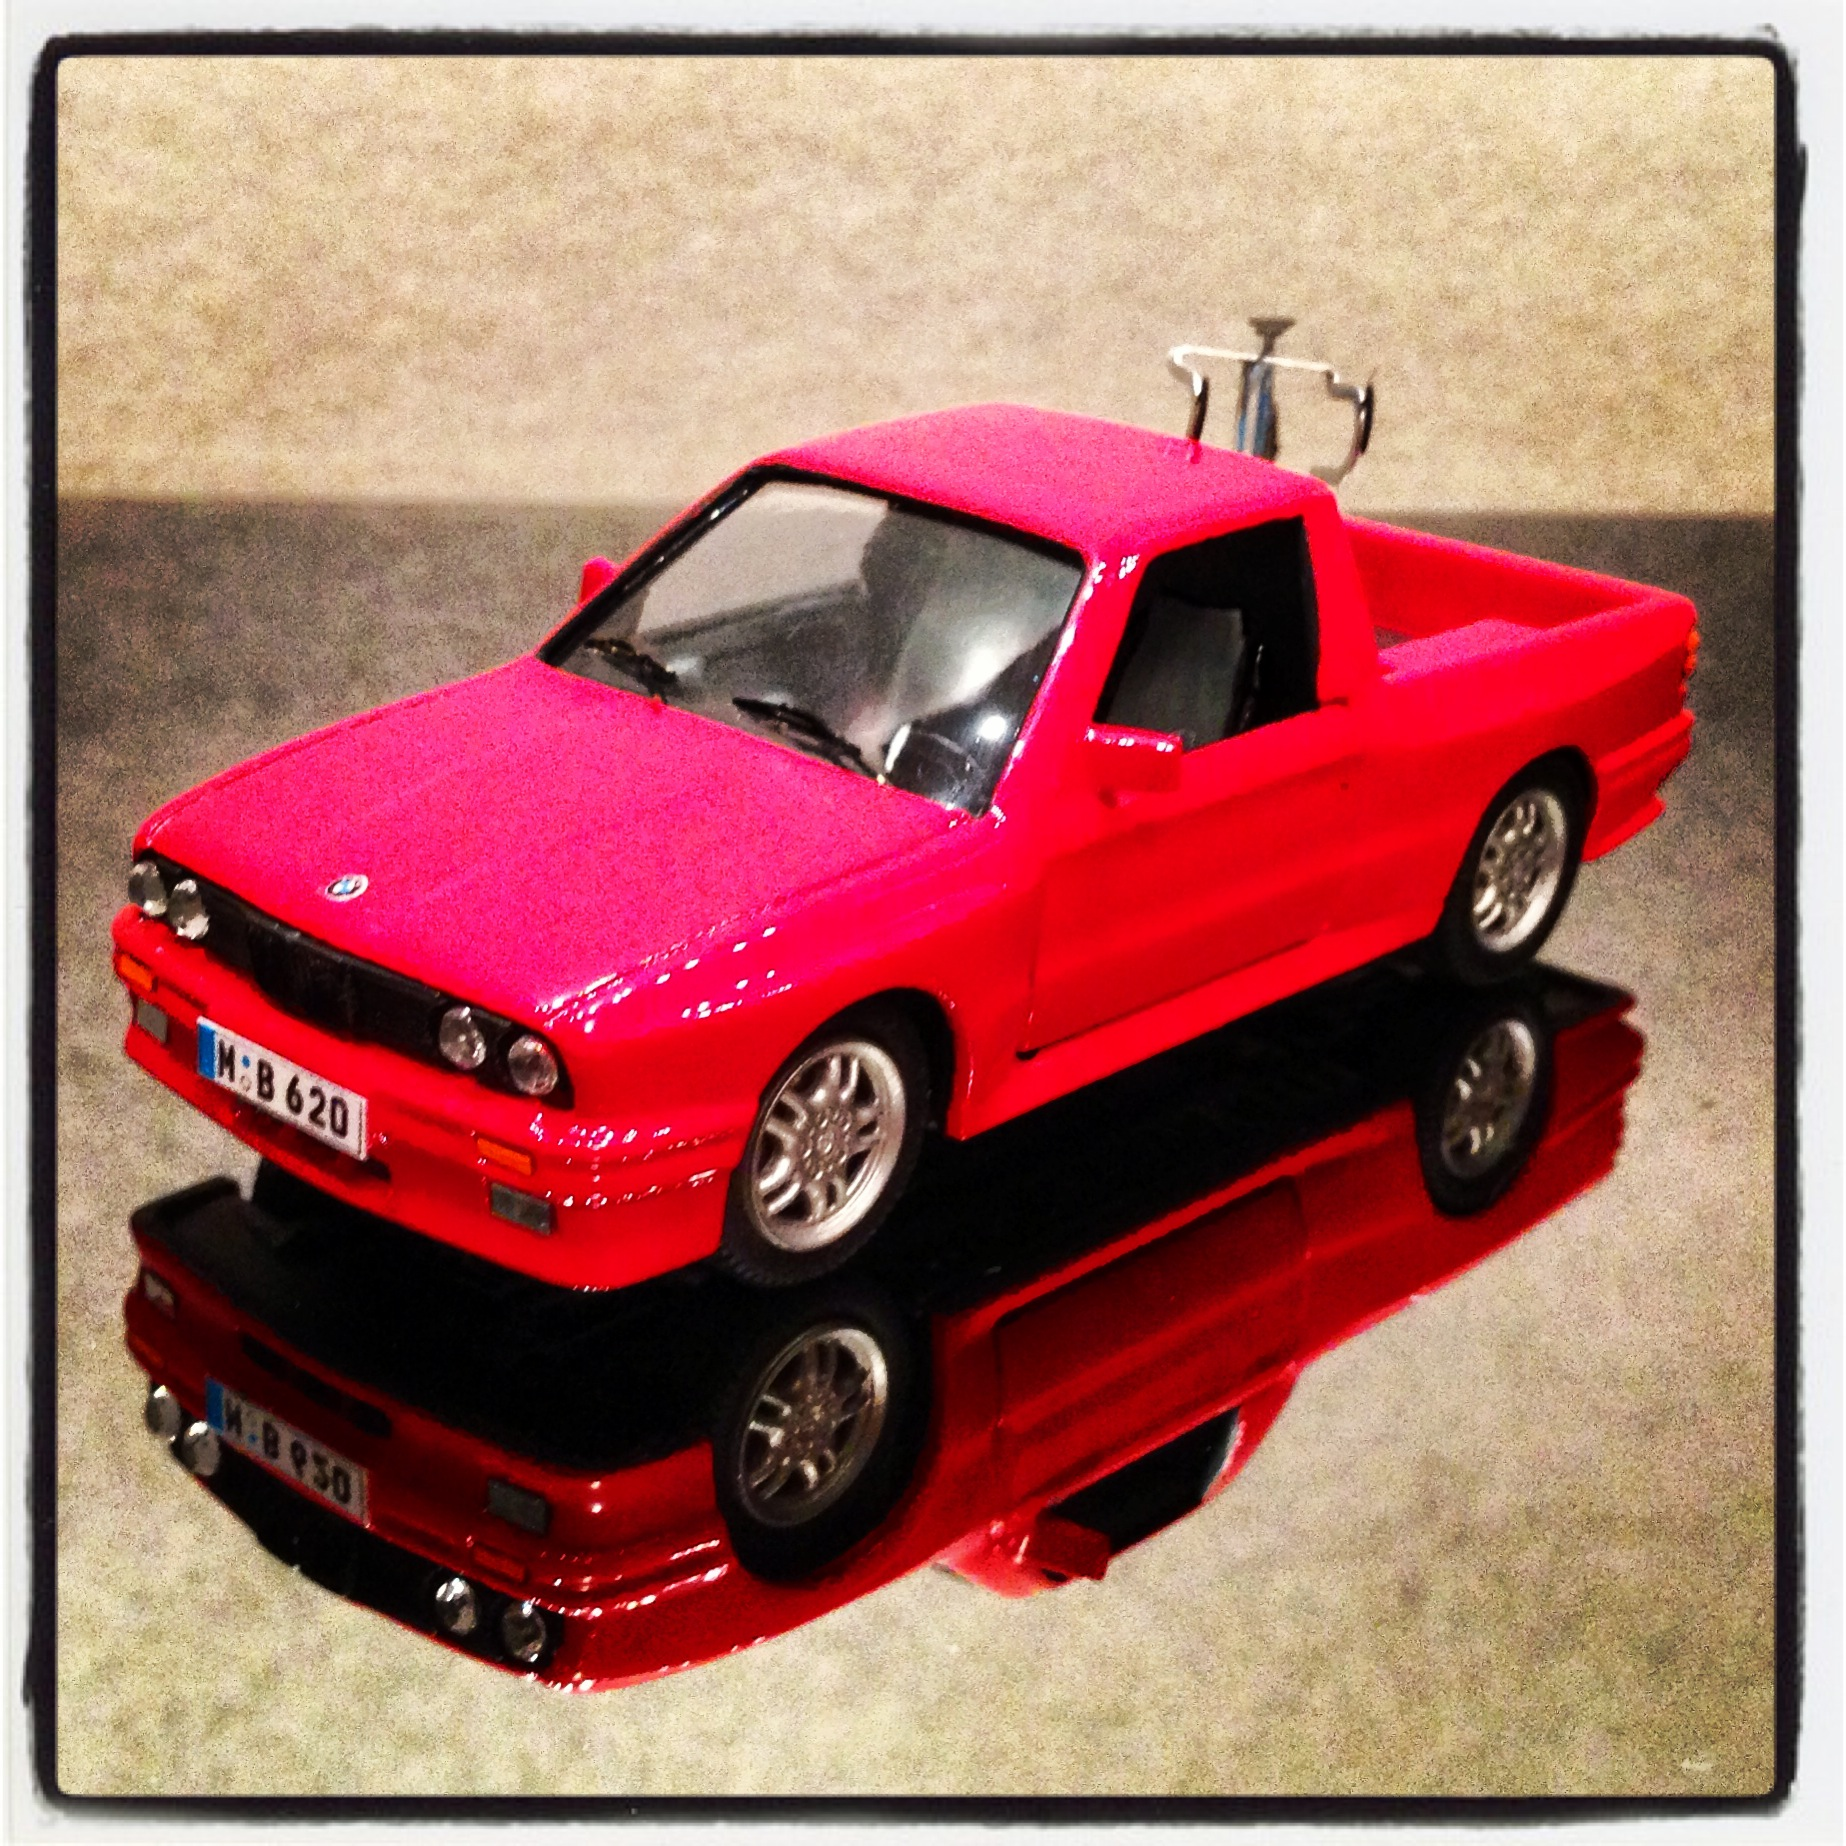 BMW 3 series pick up (E30) with bycicle, red (handmade)